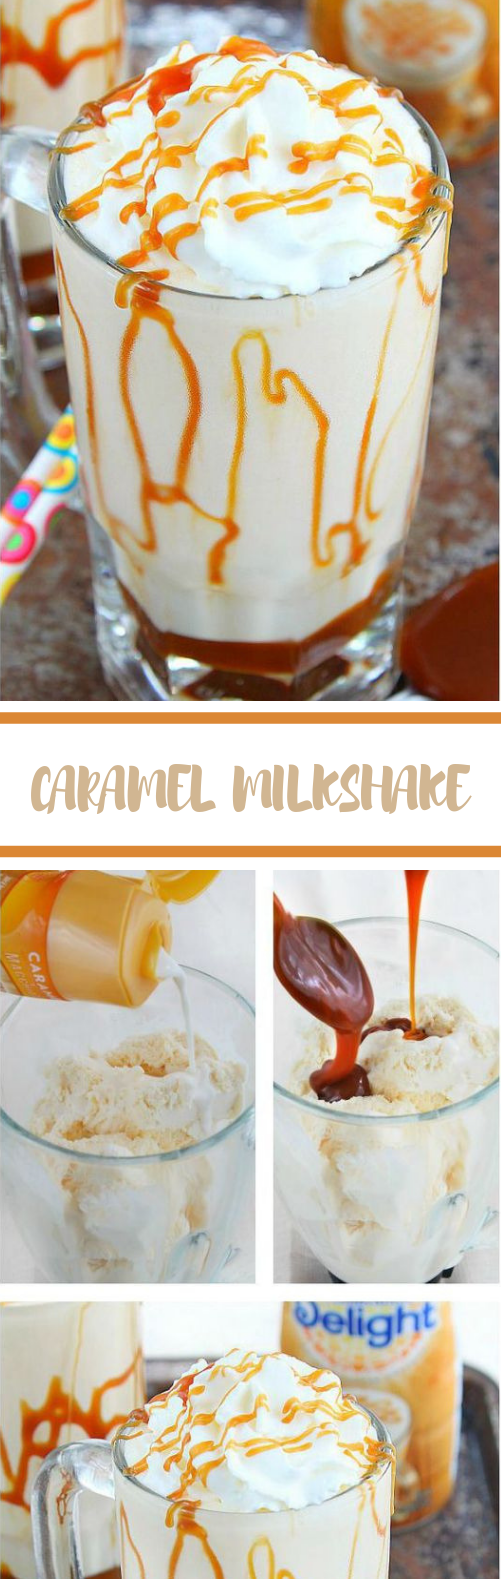 Caramel Milkshake #sweet #drinks